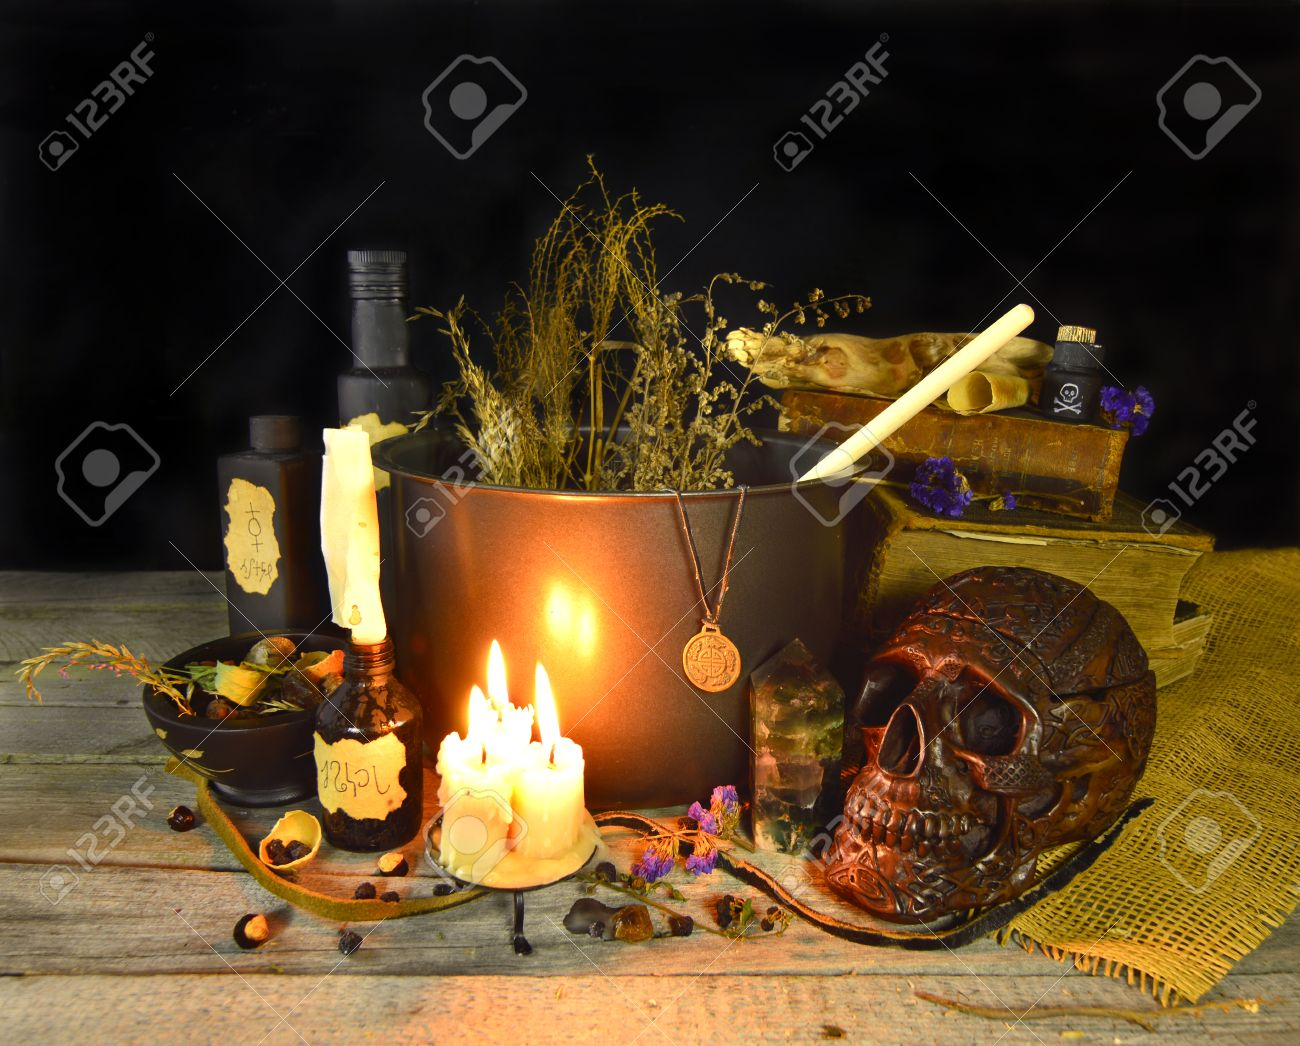 Halloween still life with witch cauldron, burning candles and